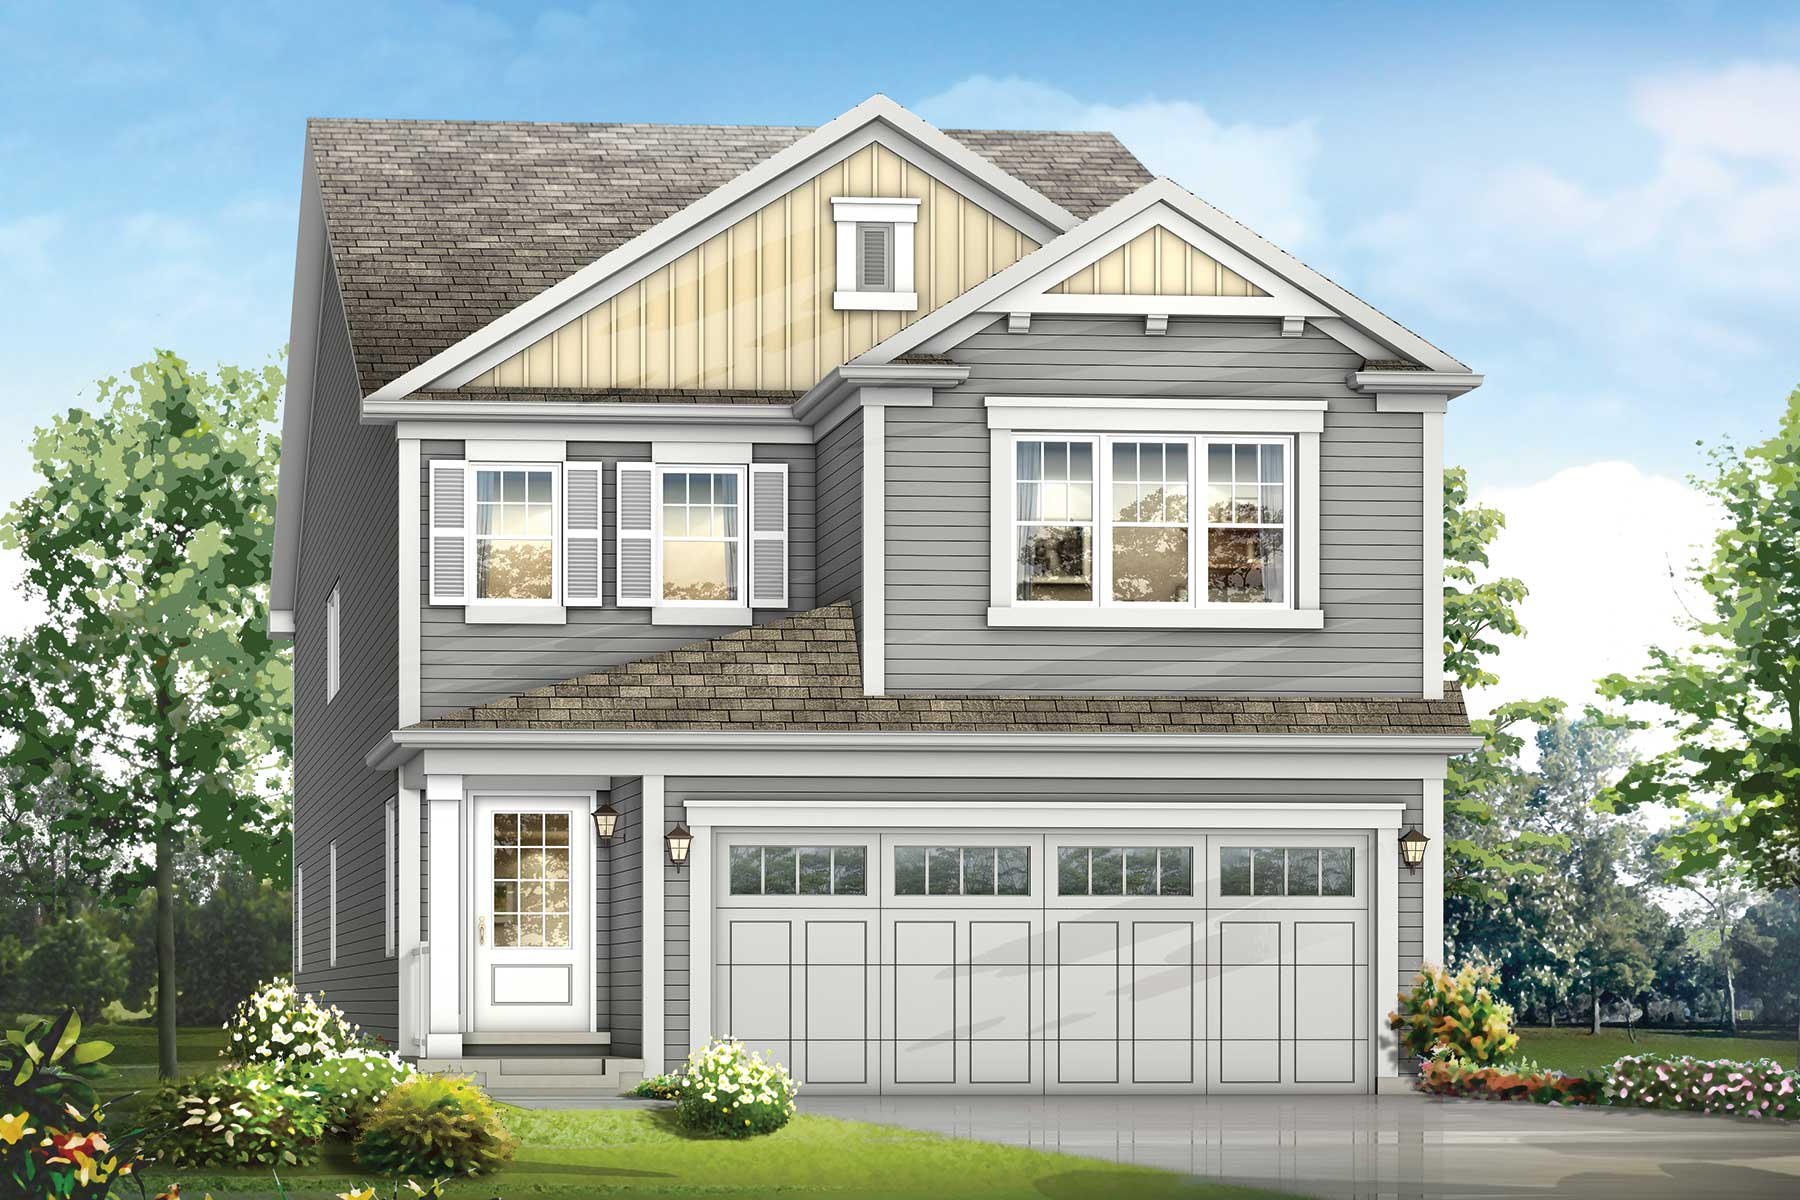 Mission Plan elevationcolonial_southwinds_mission at Southwinds in Airdrie Alberta by Mattamy Homes